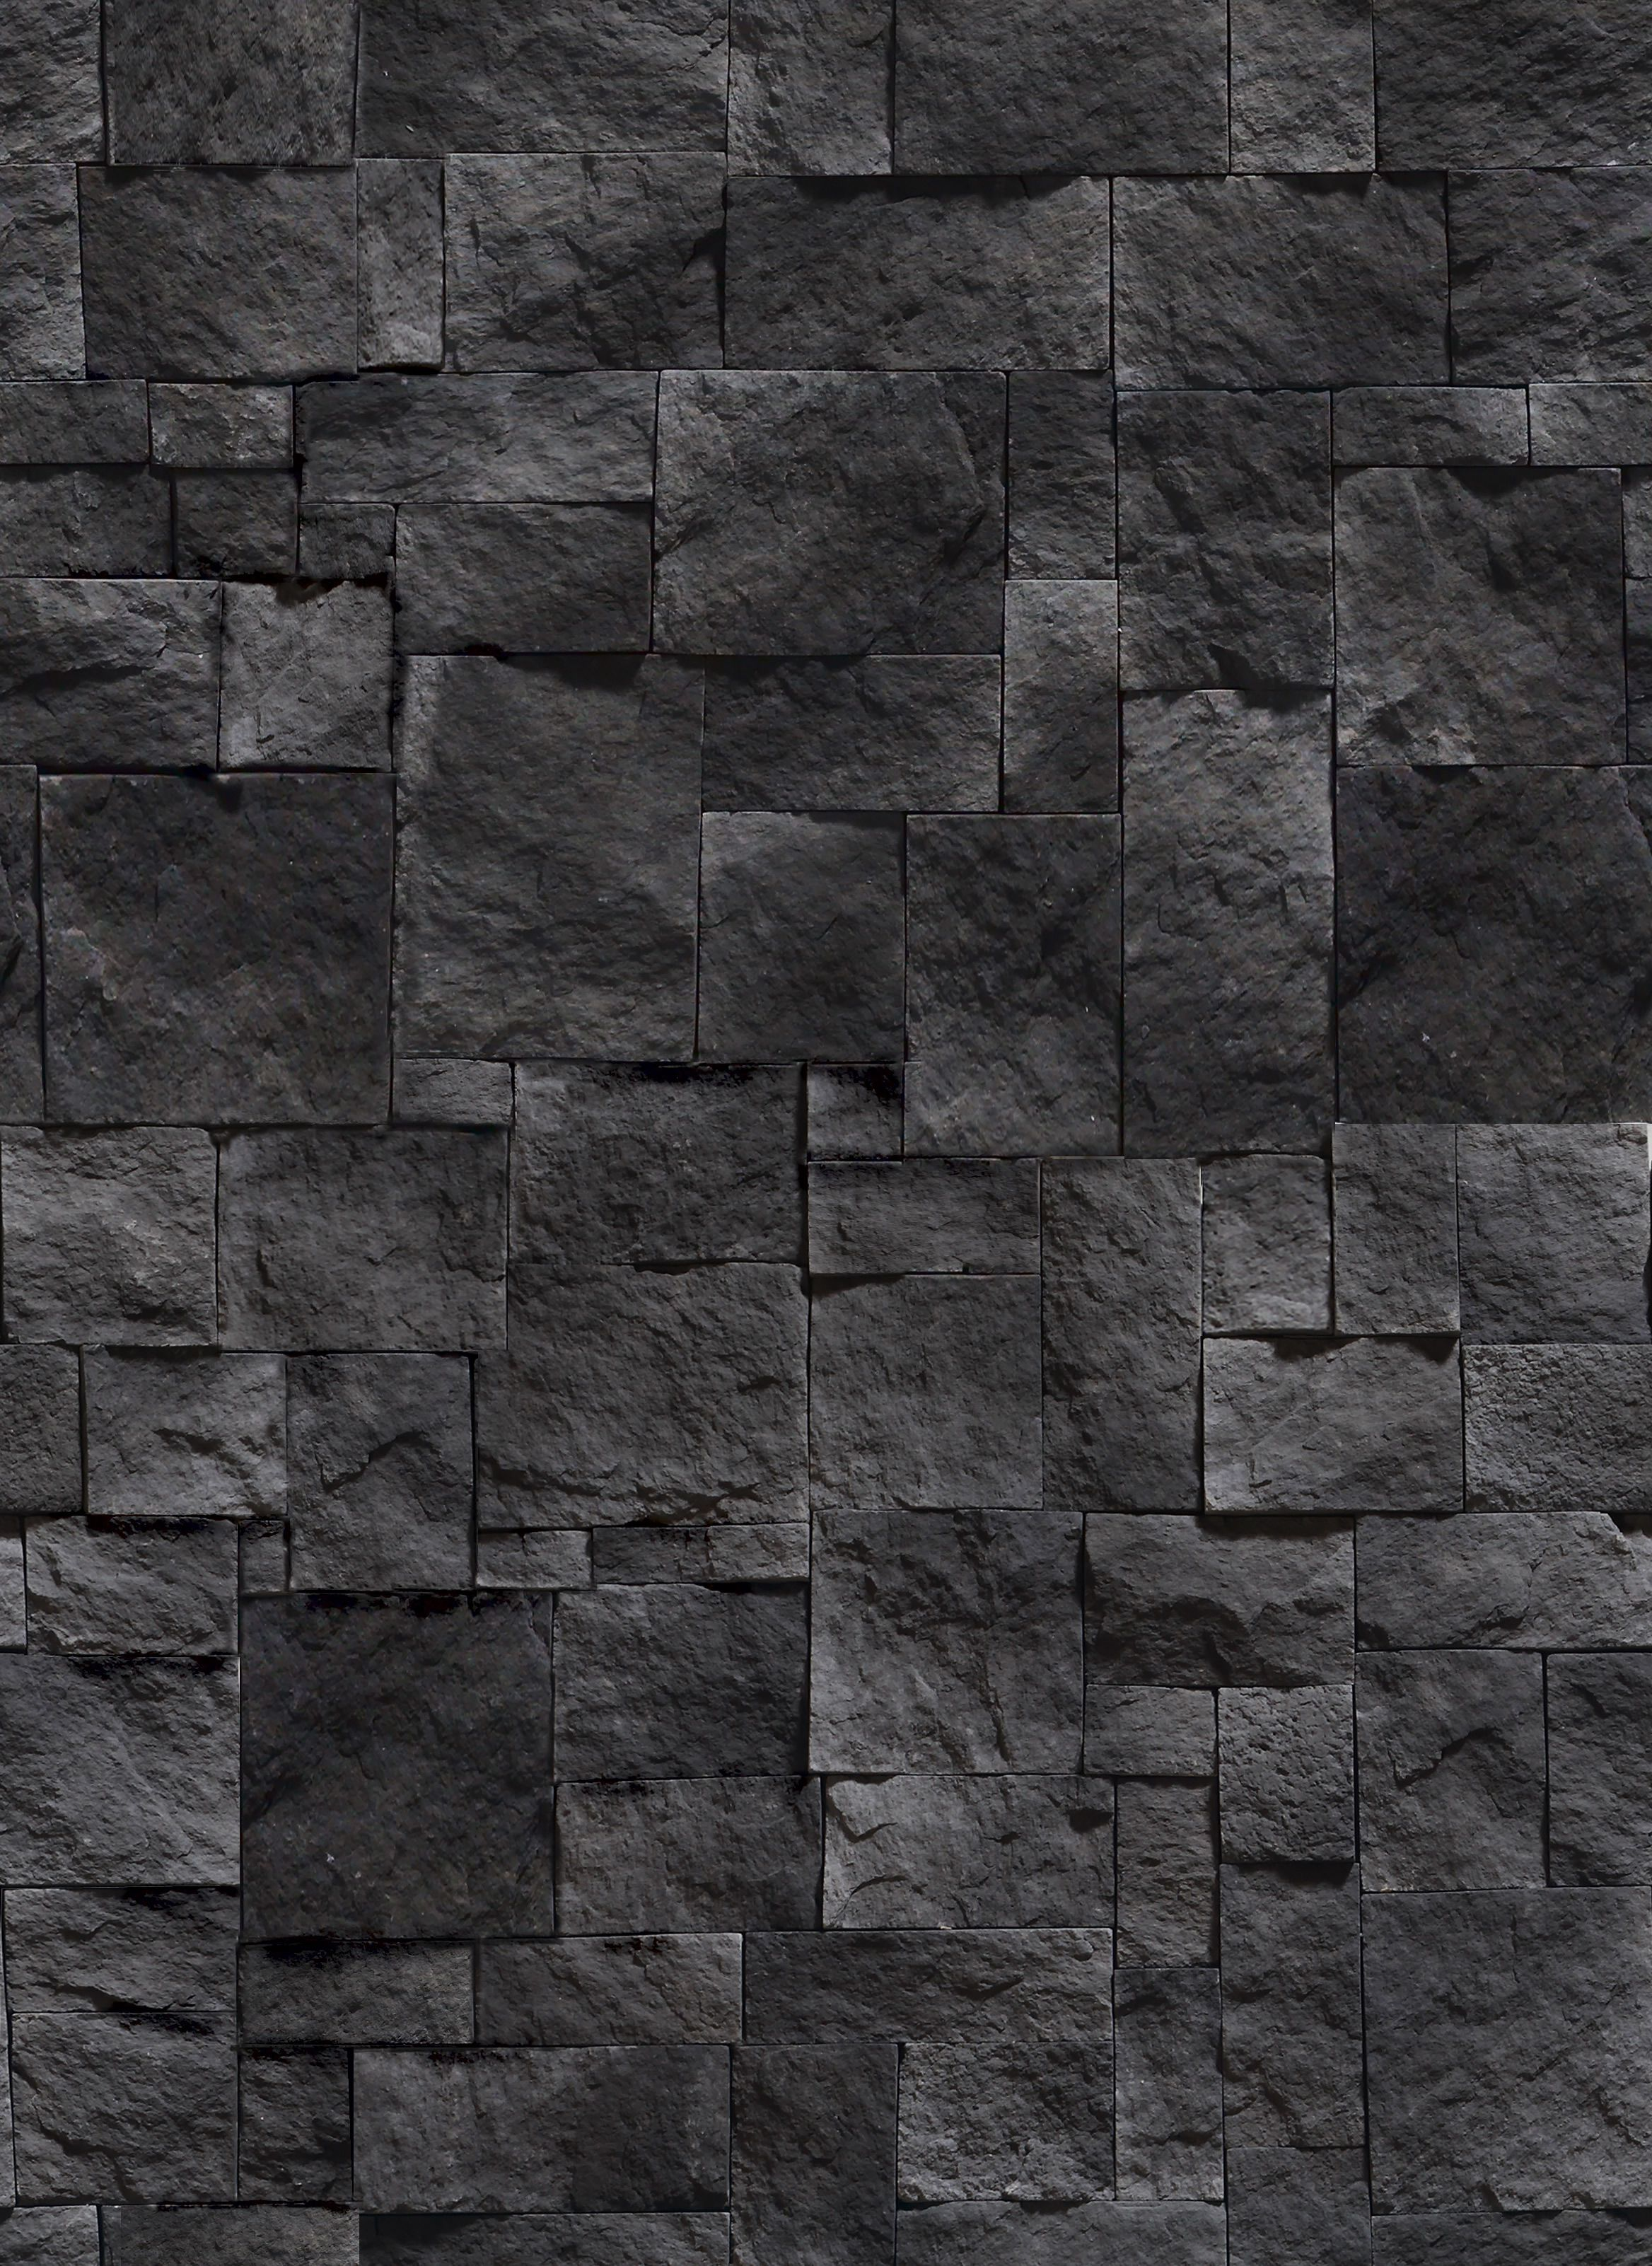 beautiful stone wall! #design #interiordesign #texture